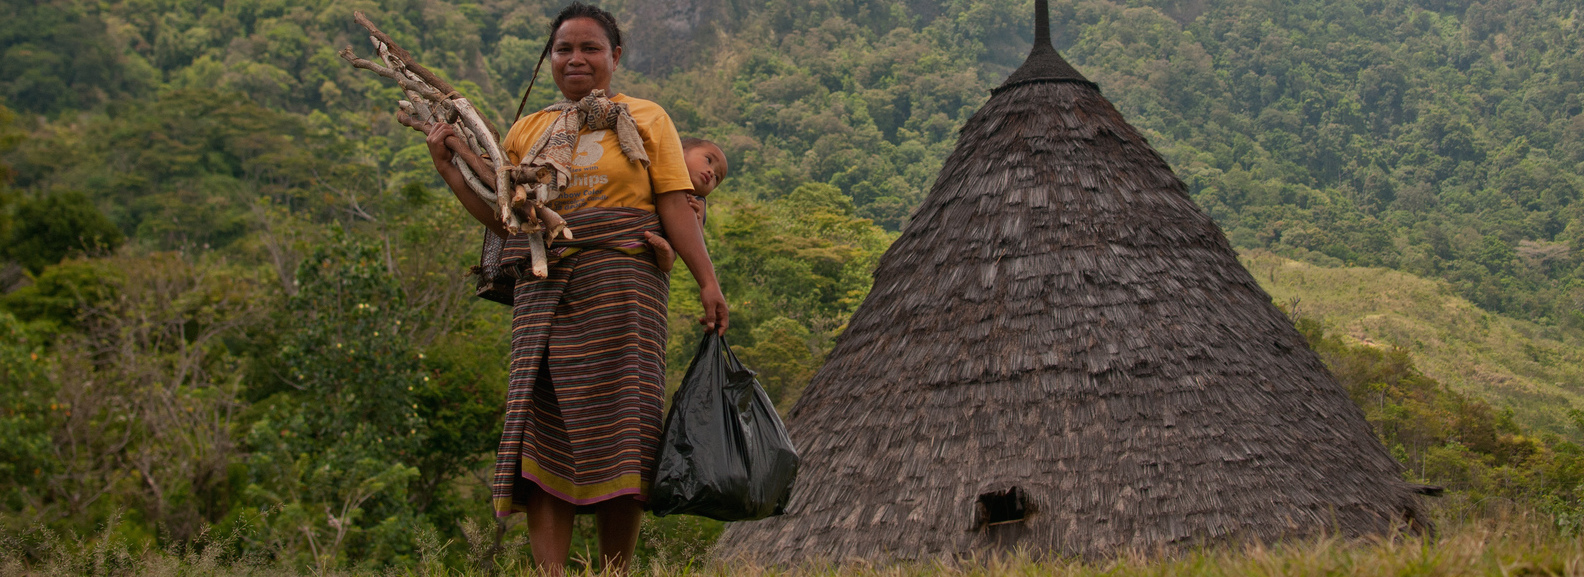 Firewood is the main energy source of the Wae rebo people.